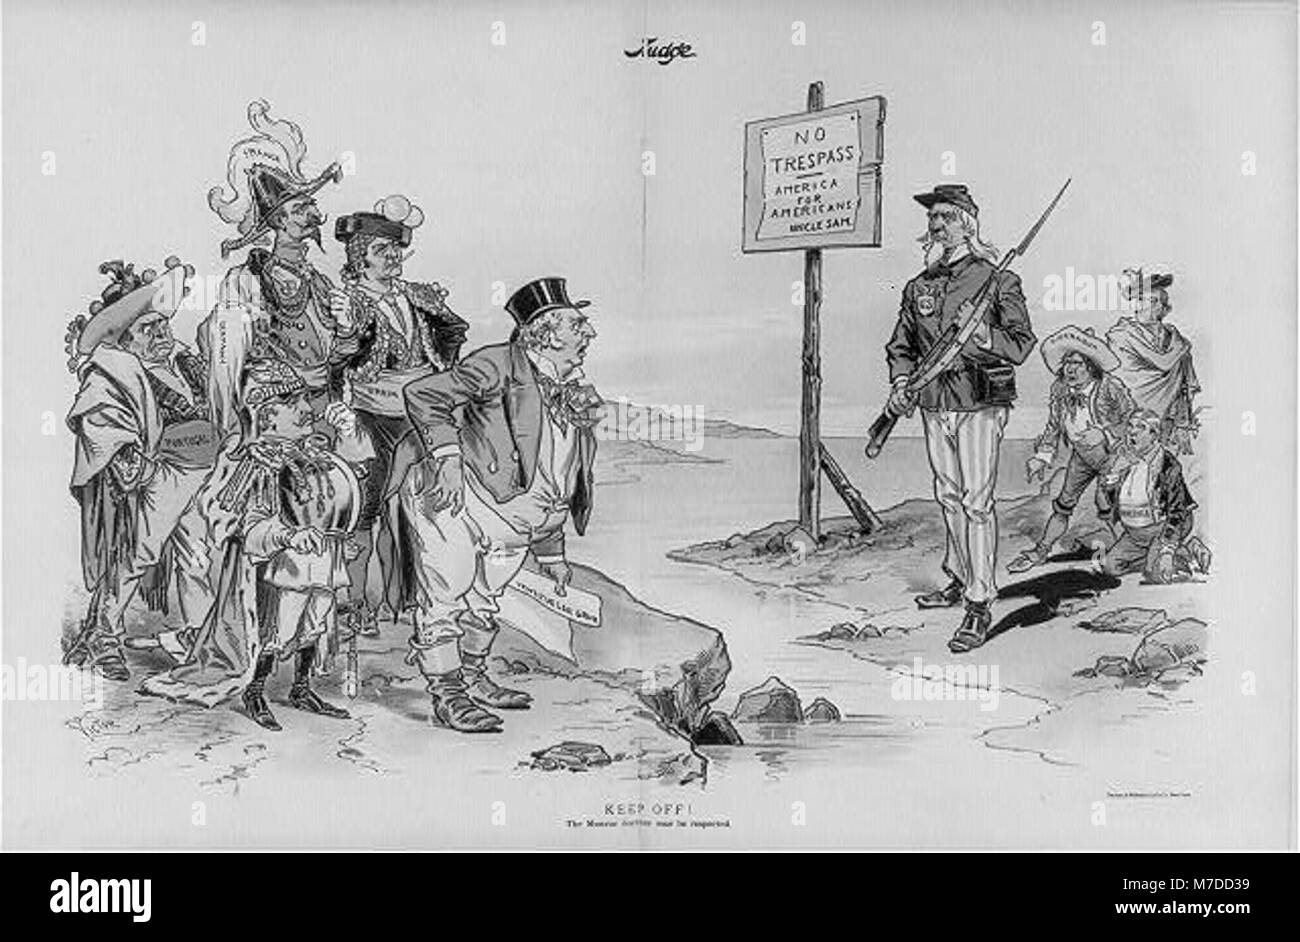 Keep off! The Monroe Doctrine must be respected LCCN2002697703 - Stock Image